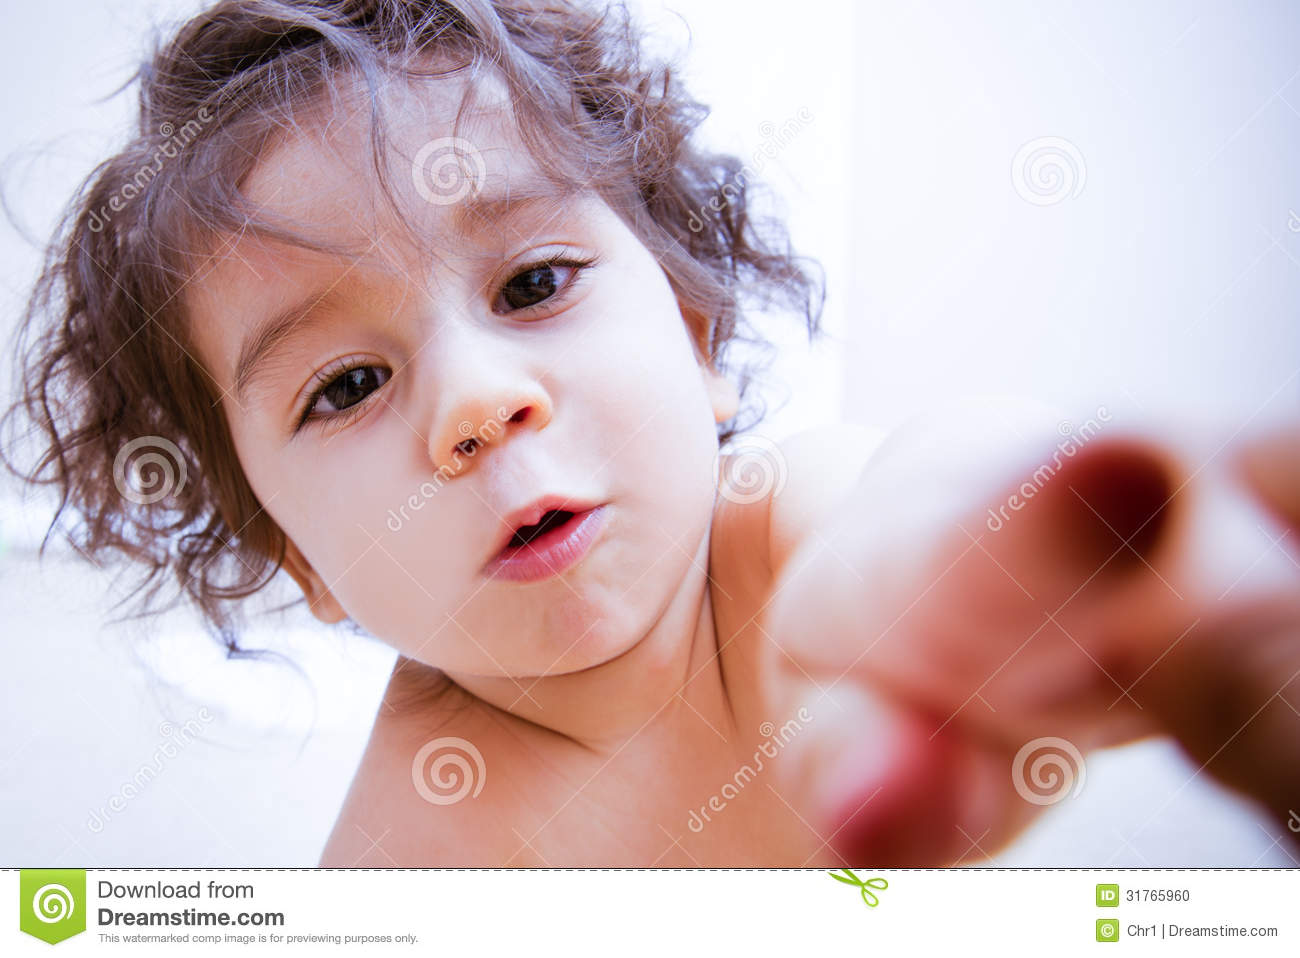 Cute Baby Stock Photo - Image: 31765960